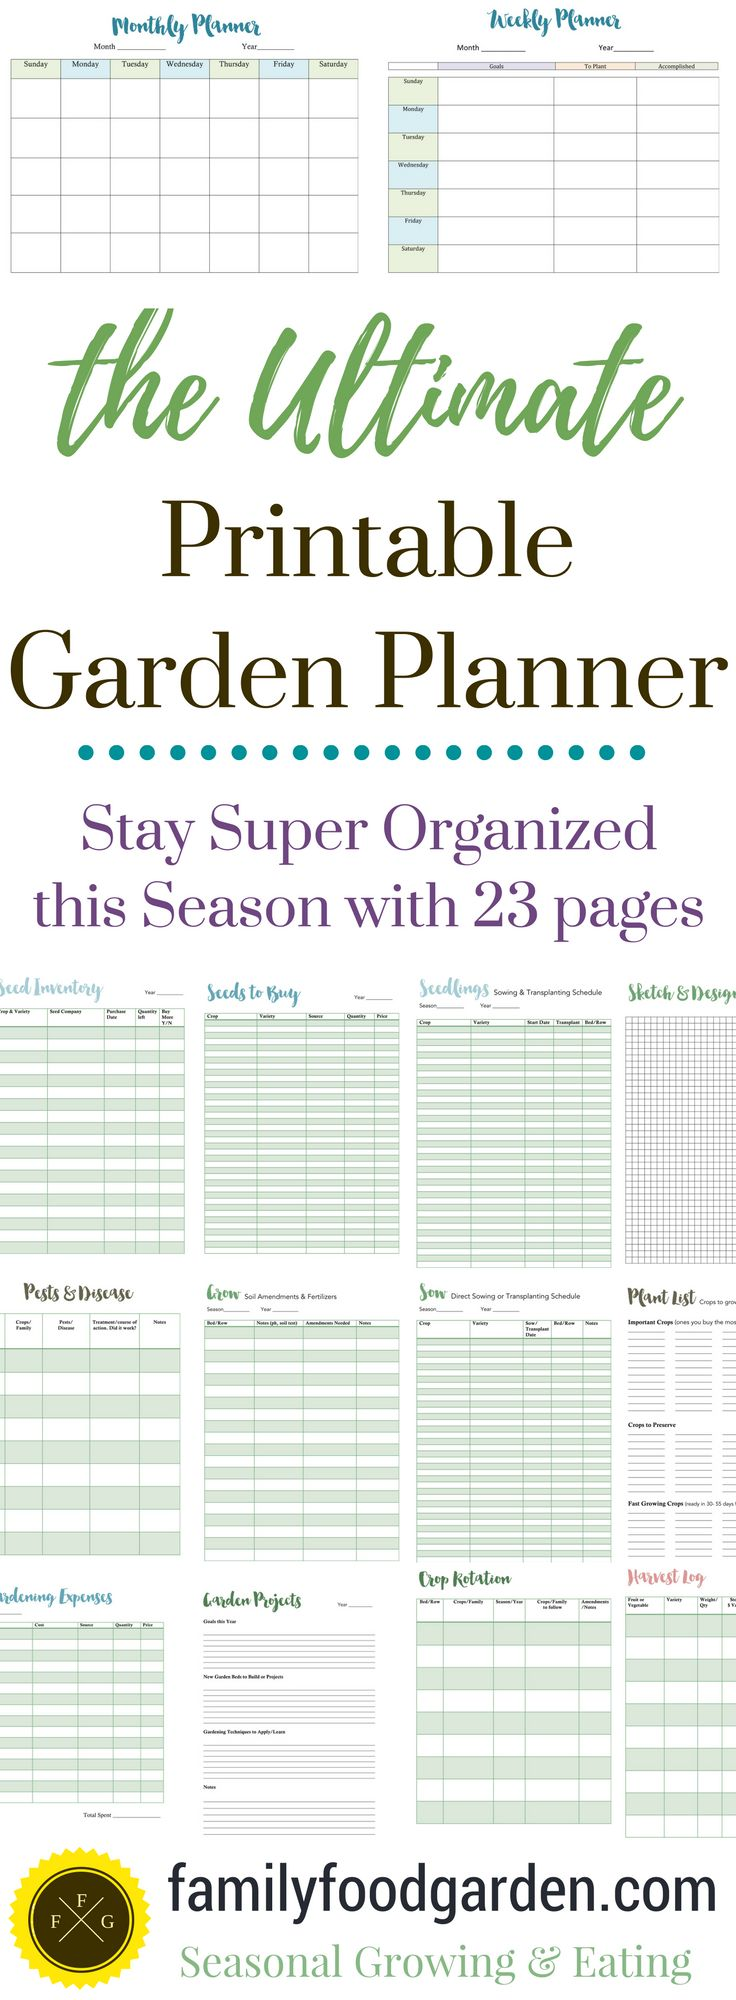 Raised vegetable garden layout 4x8 - Ultimate Printable Garden Planner